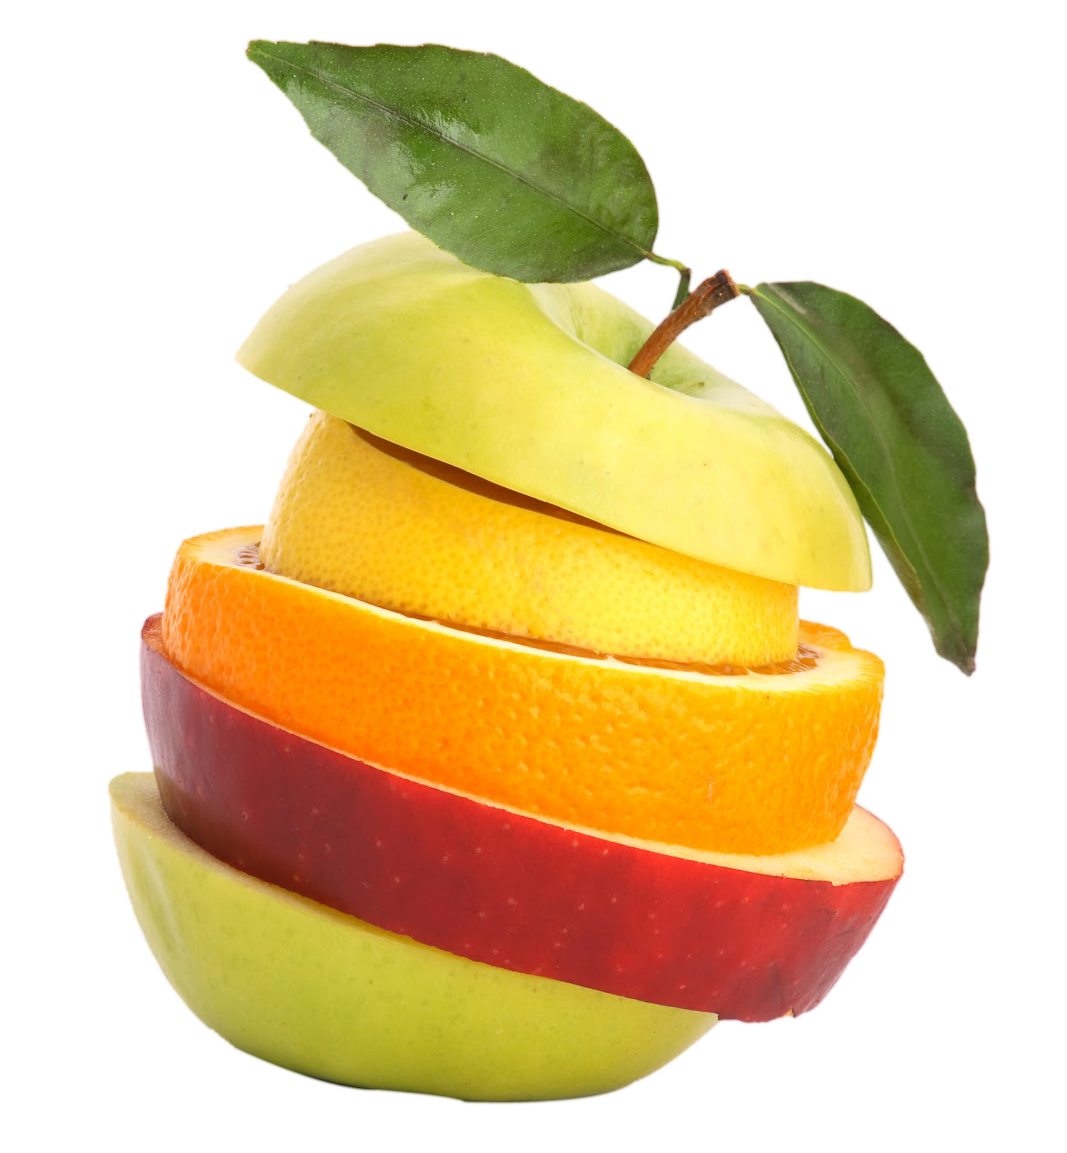 clip royalty free stock Transparent fruit. Png images all.